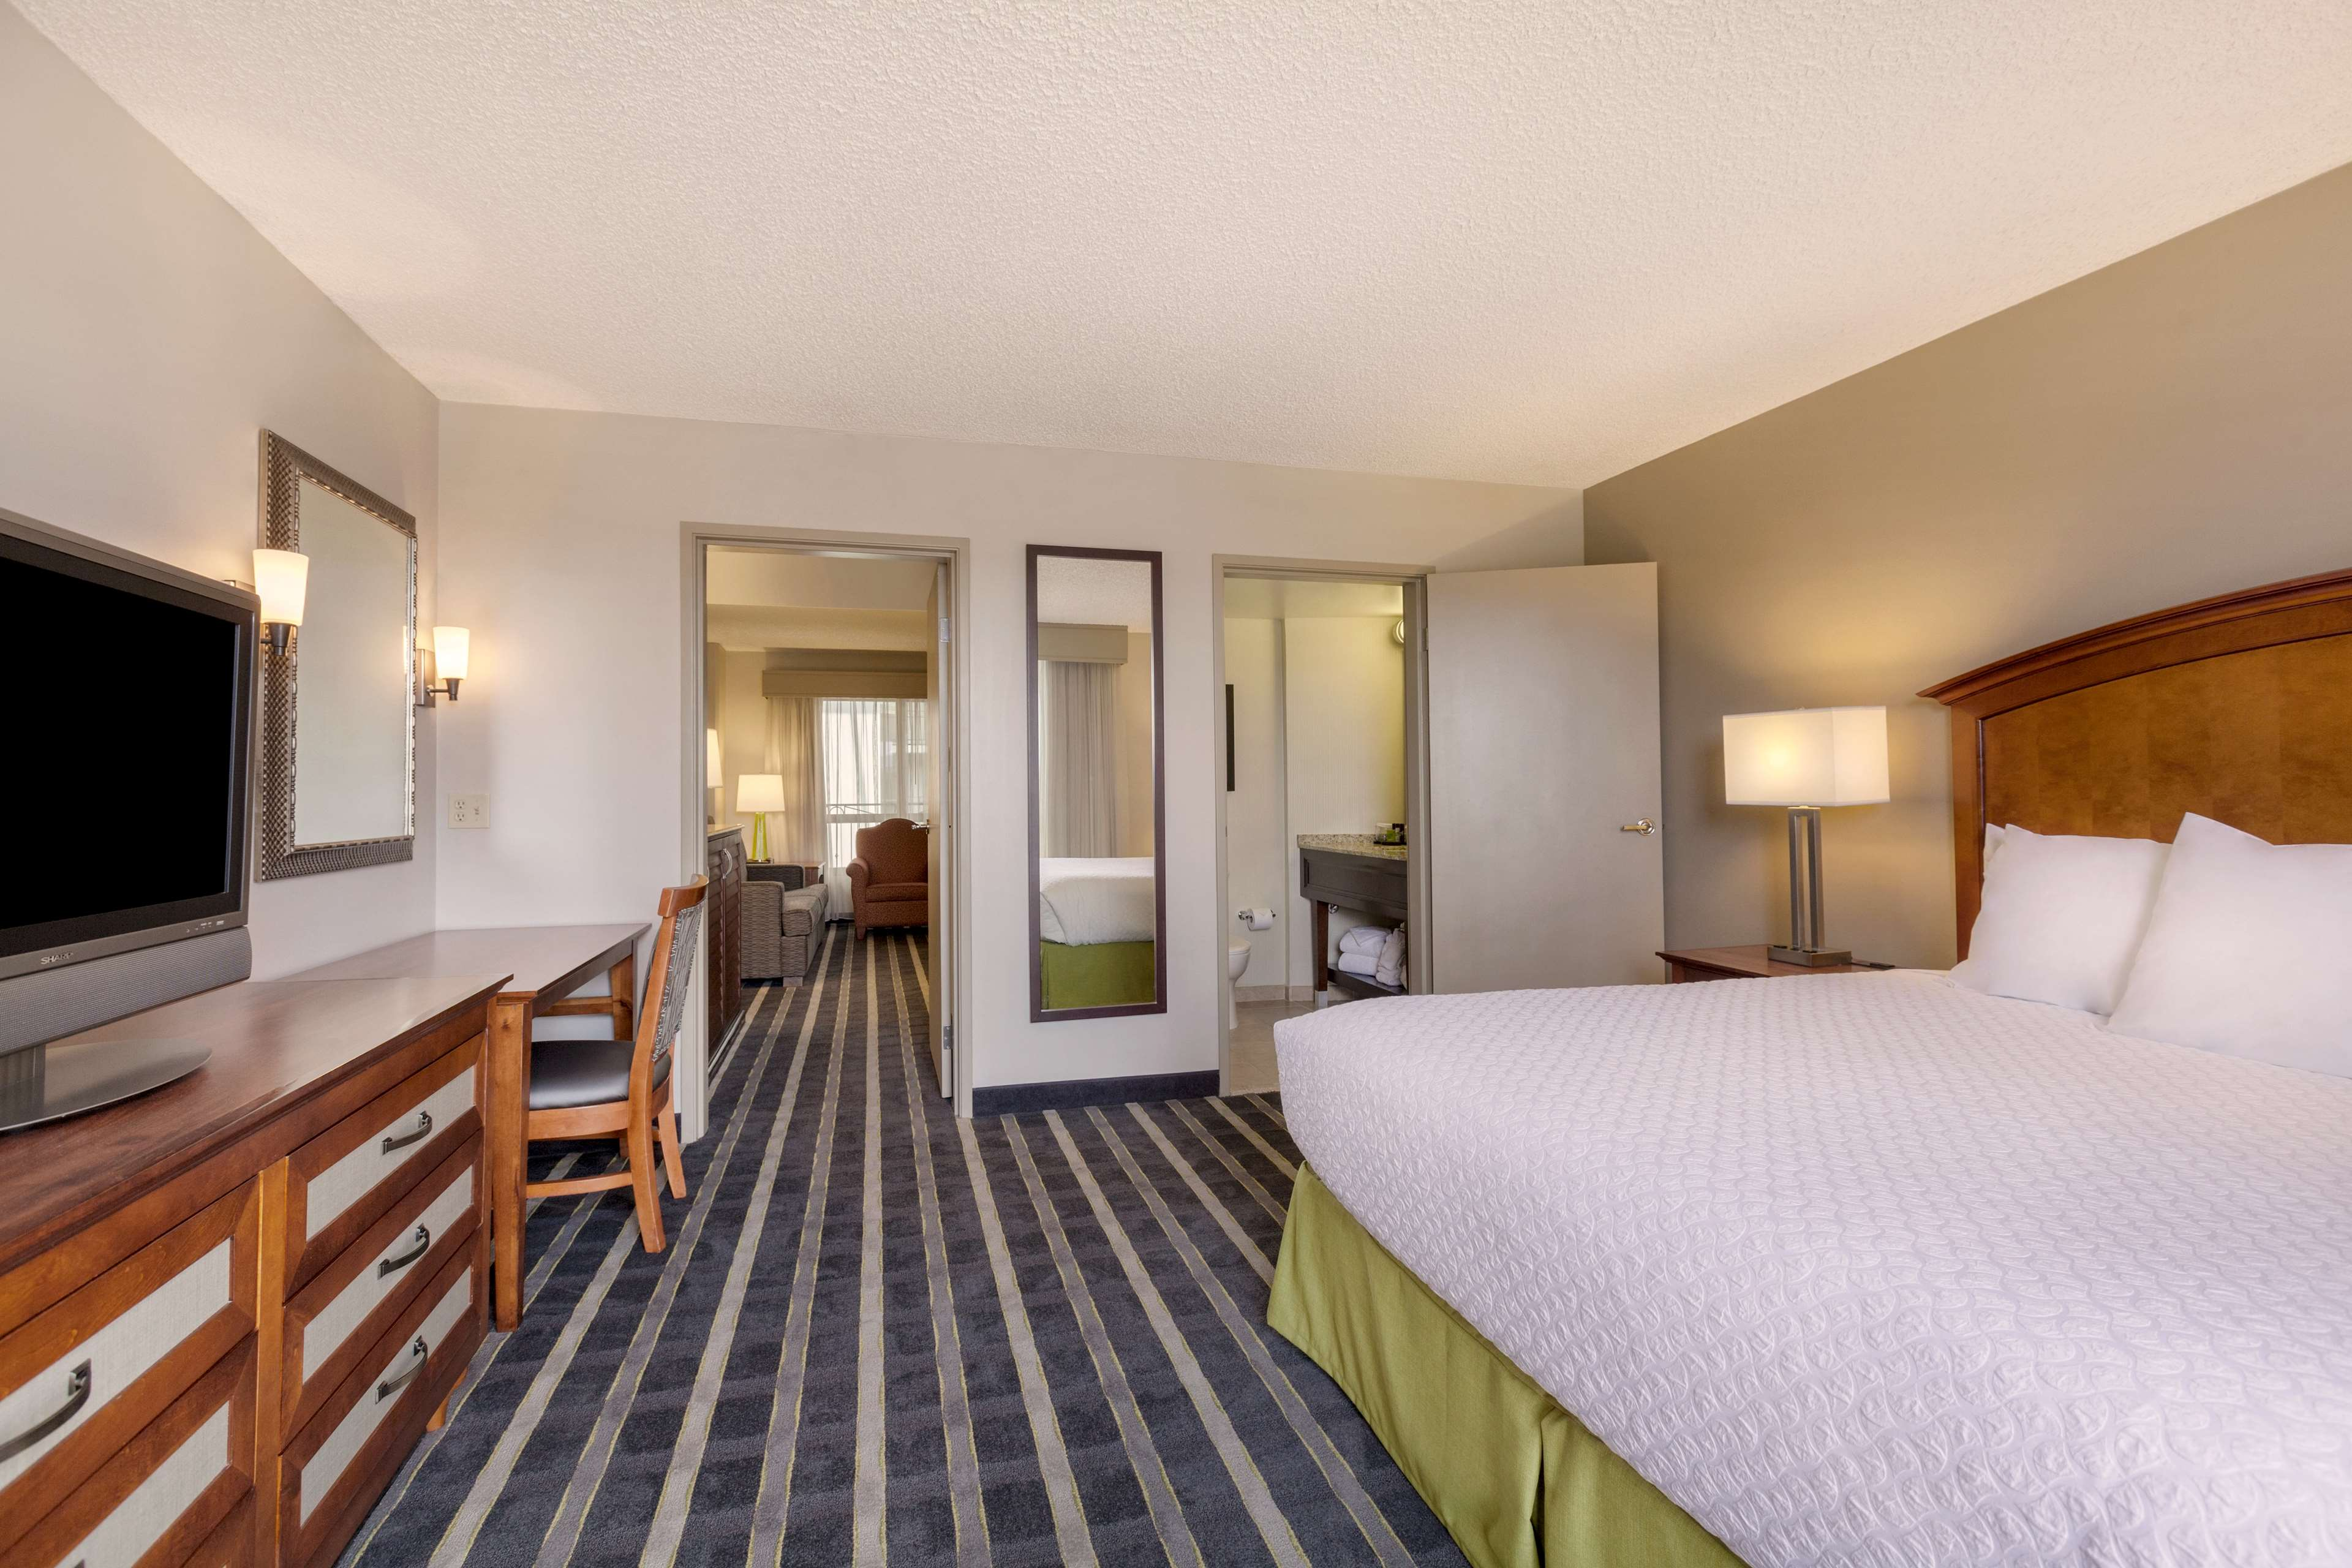 Embassy Suites by Hilton San Francisco Airport Waterfront image 32